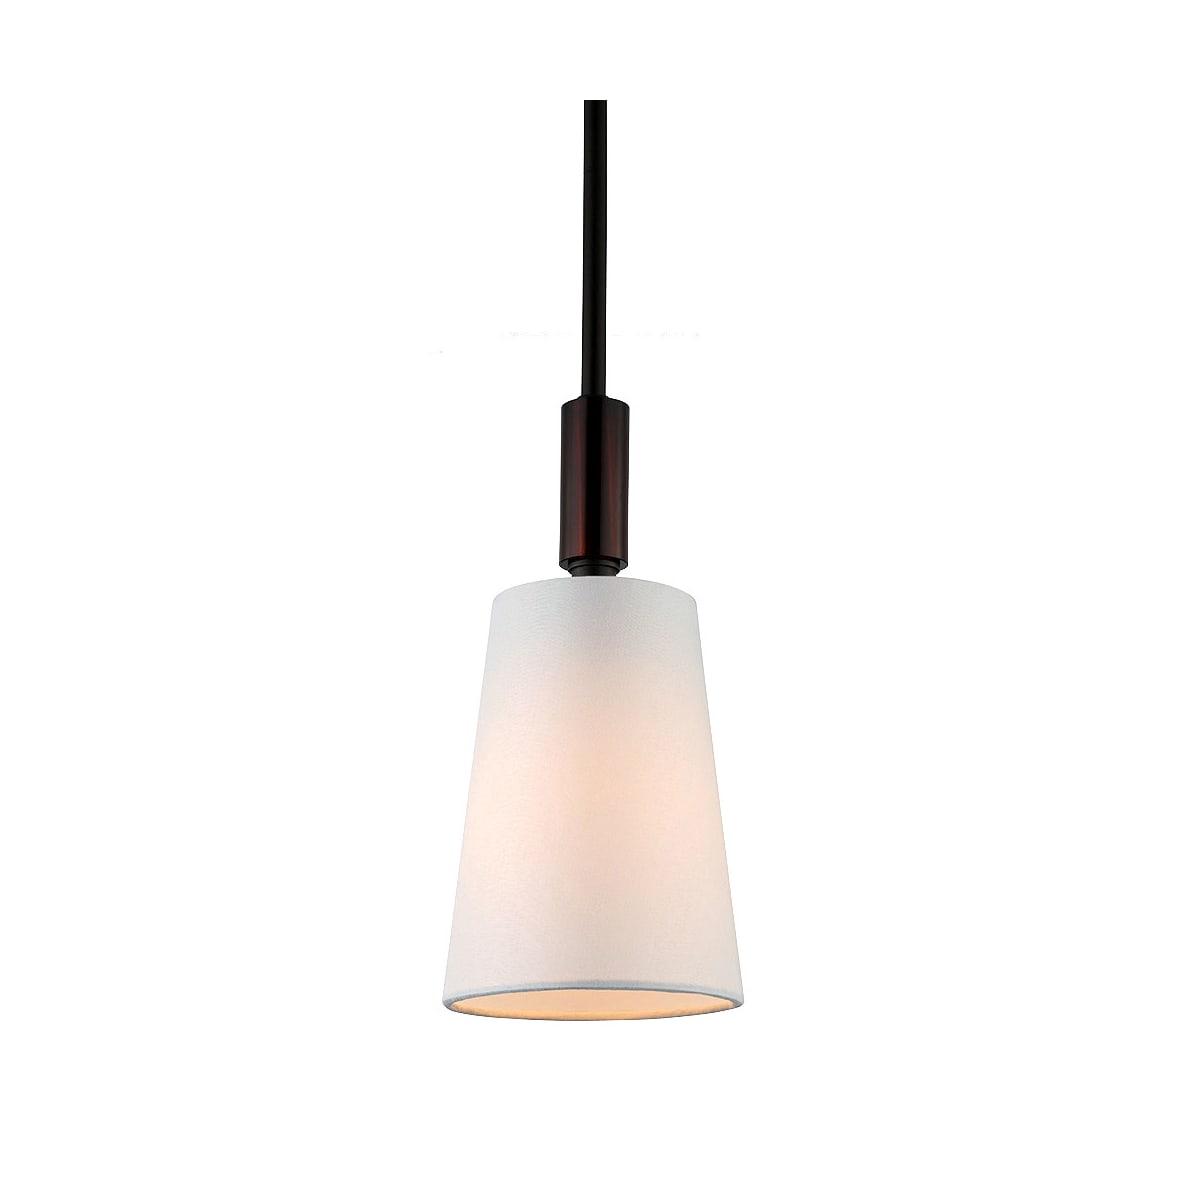 Feiss P1303orb Oil Rubbed Bronze Lismore 1 Light Mini Pendant Lightingdirect Com